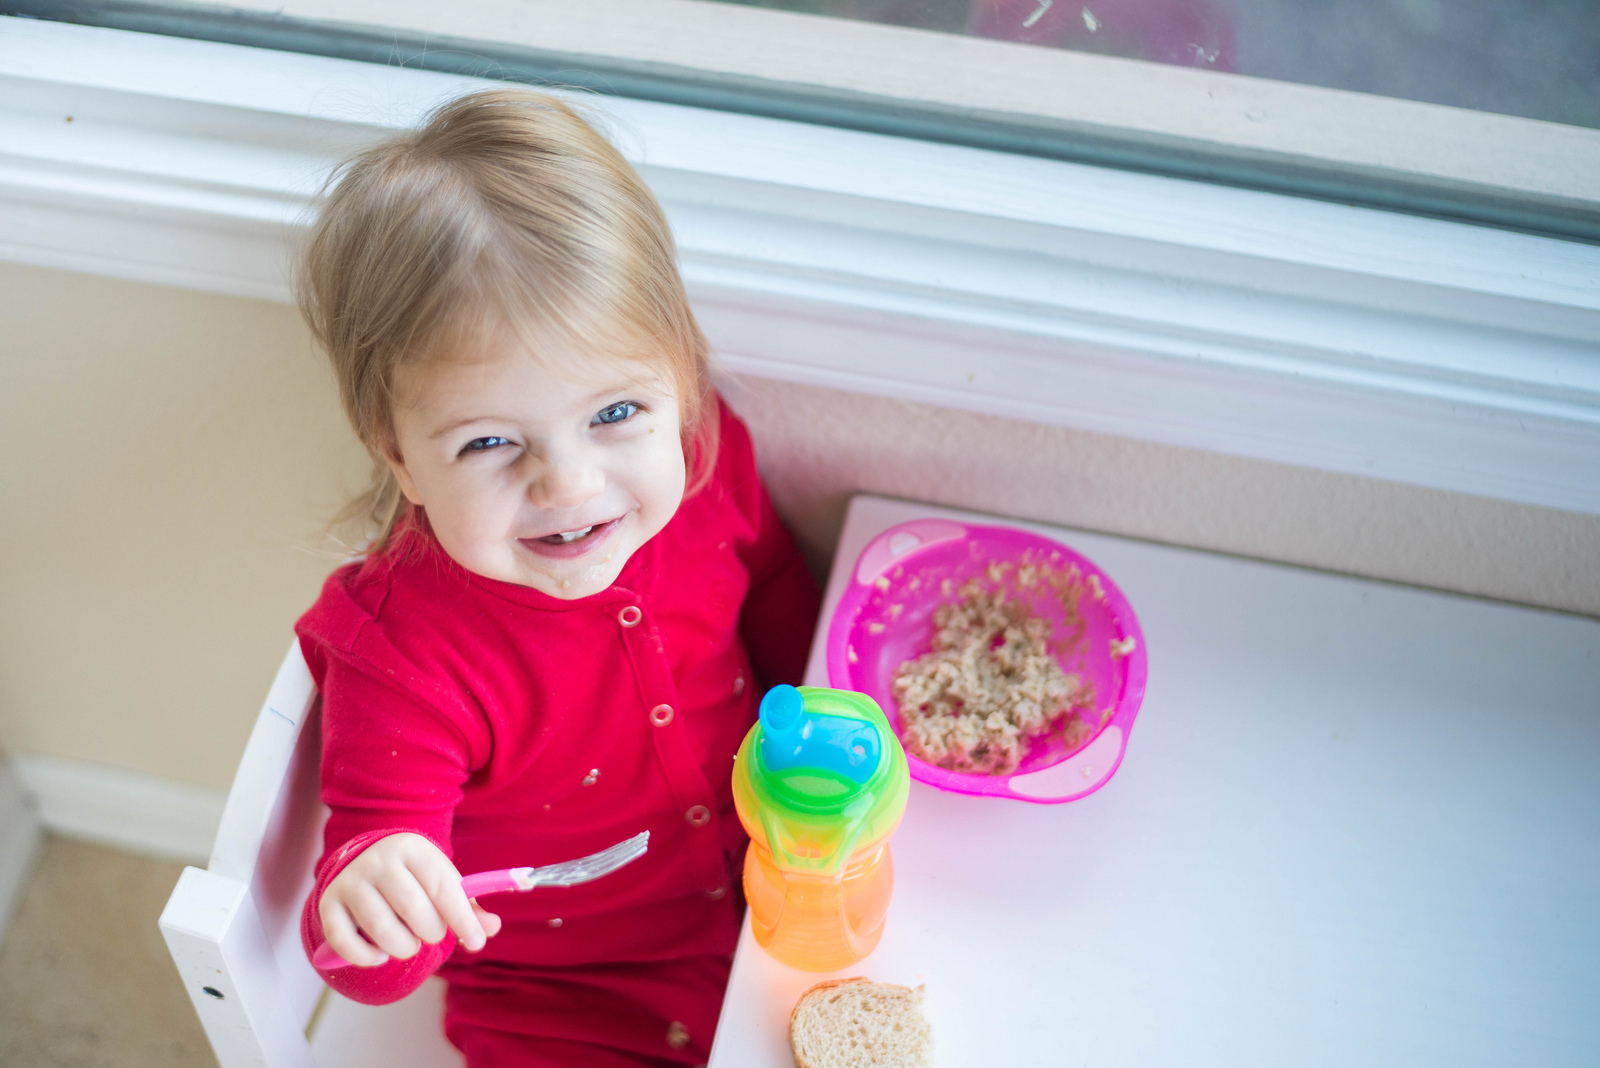 10 Ways to Pack Extra Nutrition Into Your Child's Lunch